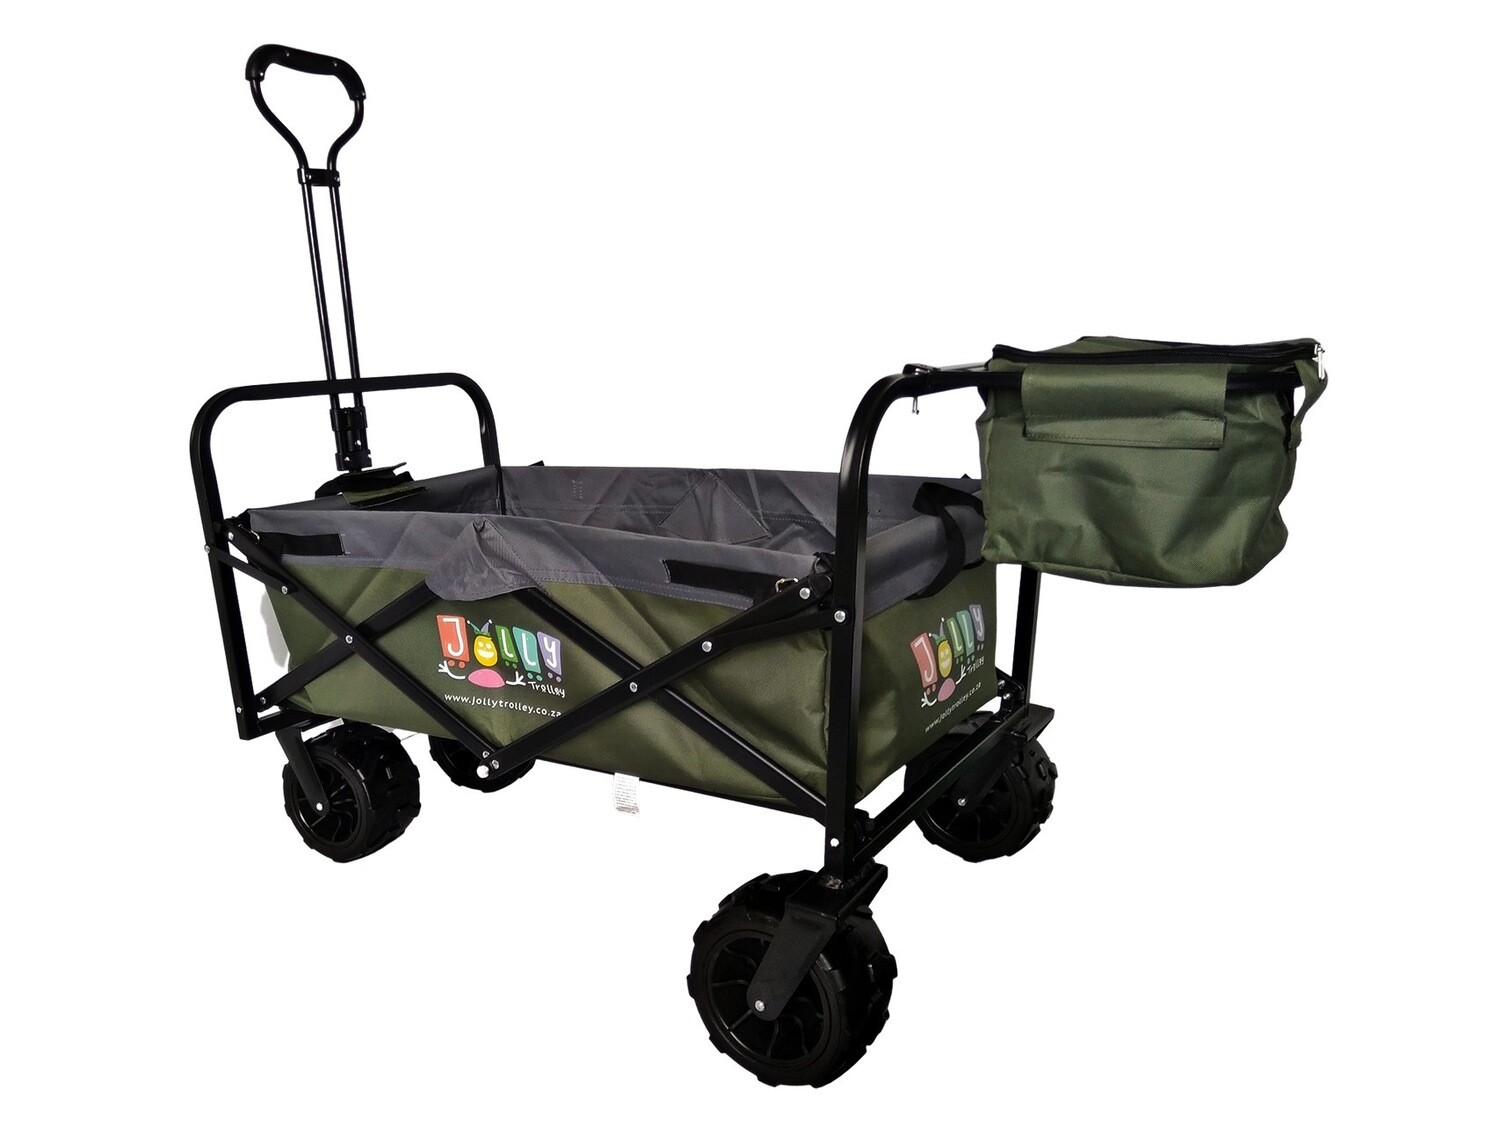 4x4 XREME Jolly Trolley with cooler bag